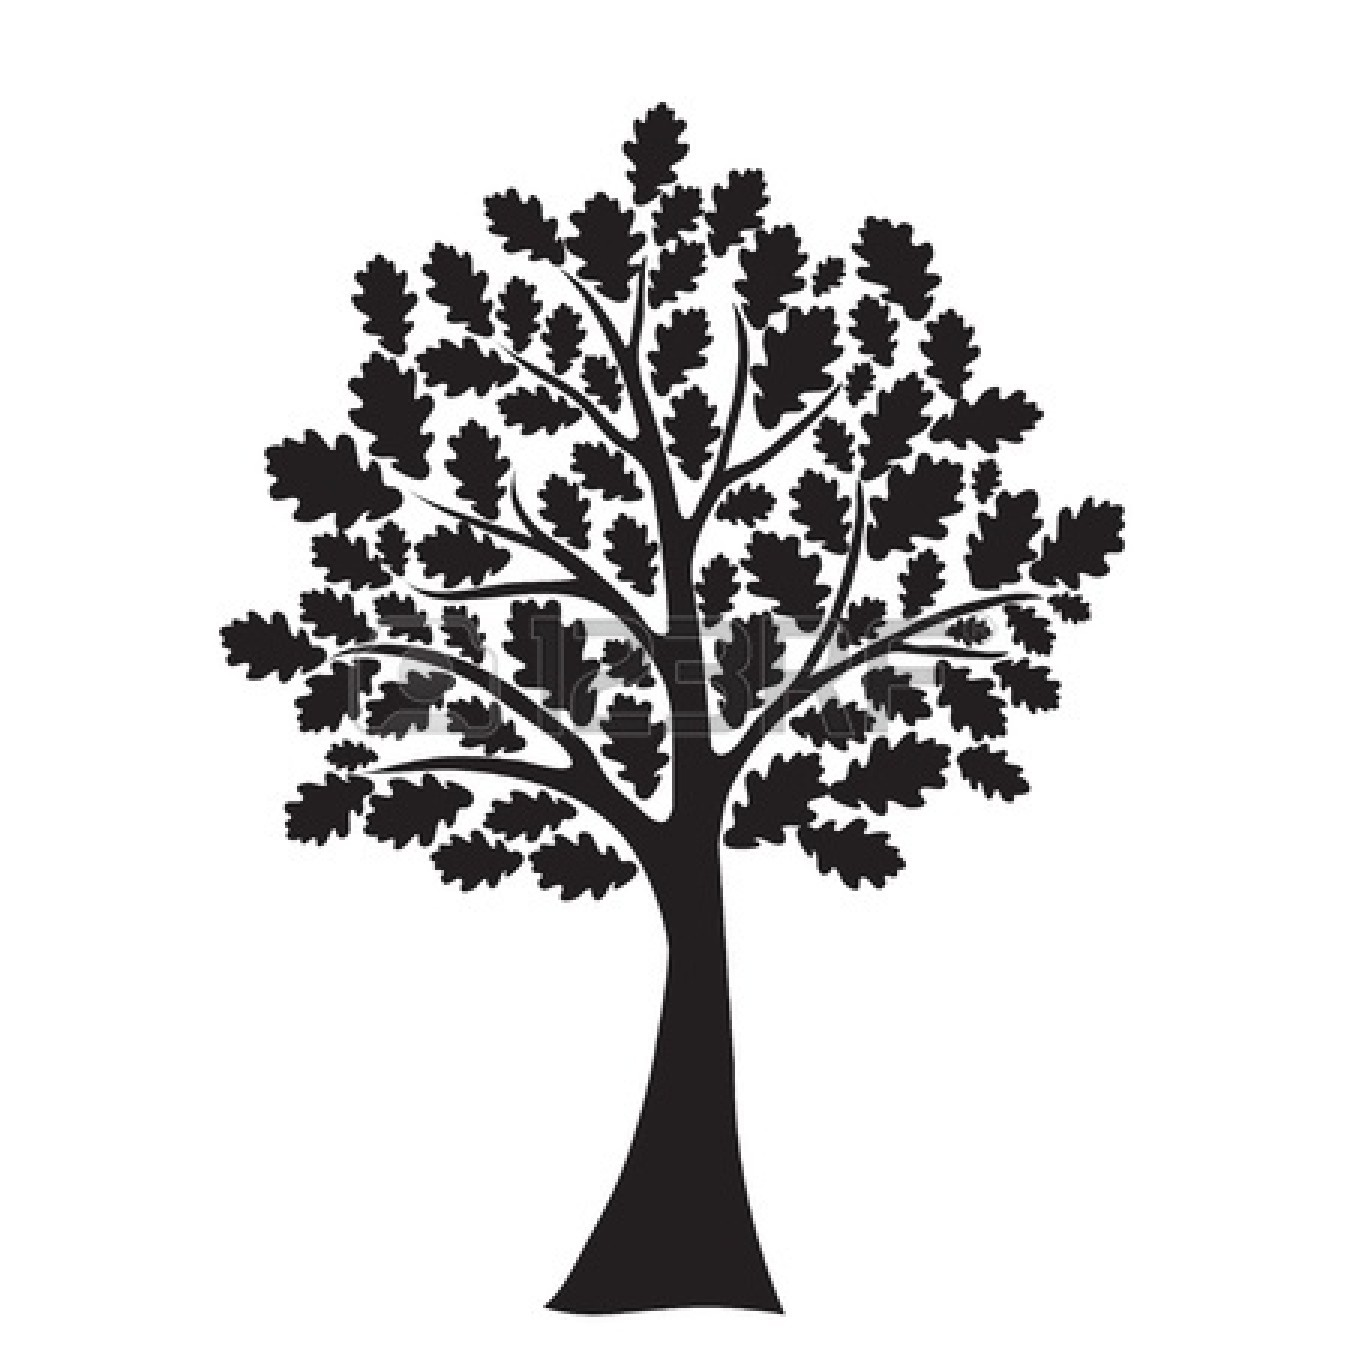 Best Tree Clipart Black And White #18966 - Clipartion.com